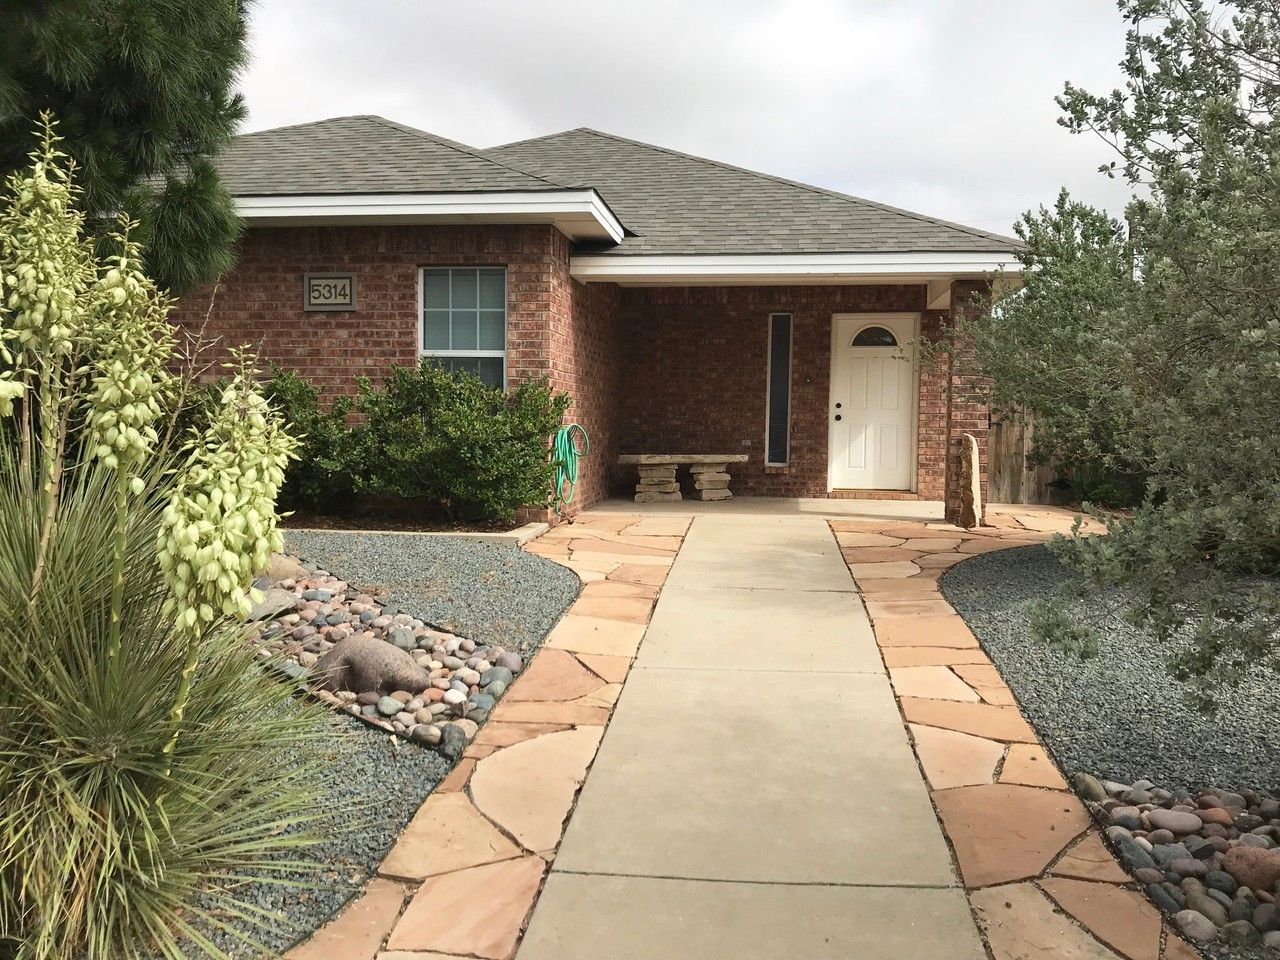 5314 Conroe Ct, Midland, TX 79707 3 Bedroom House for Rent ...